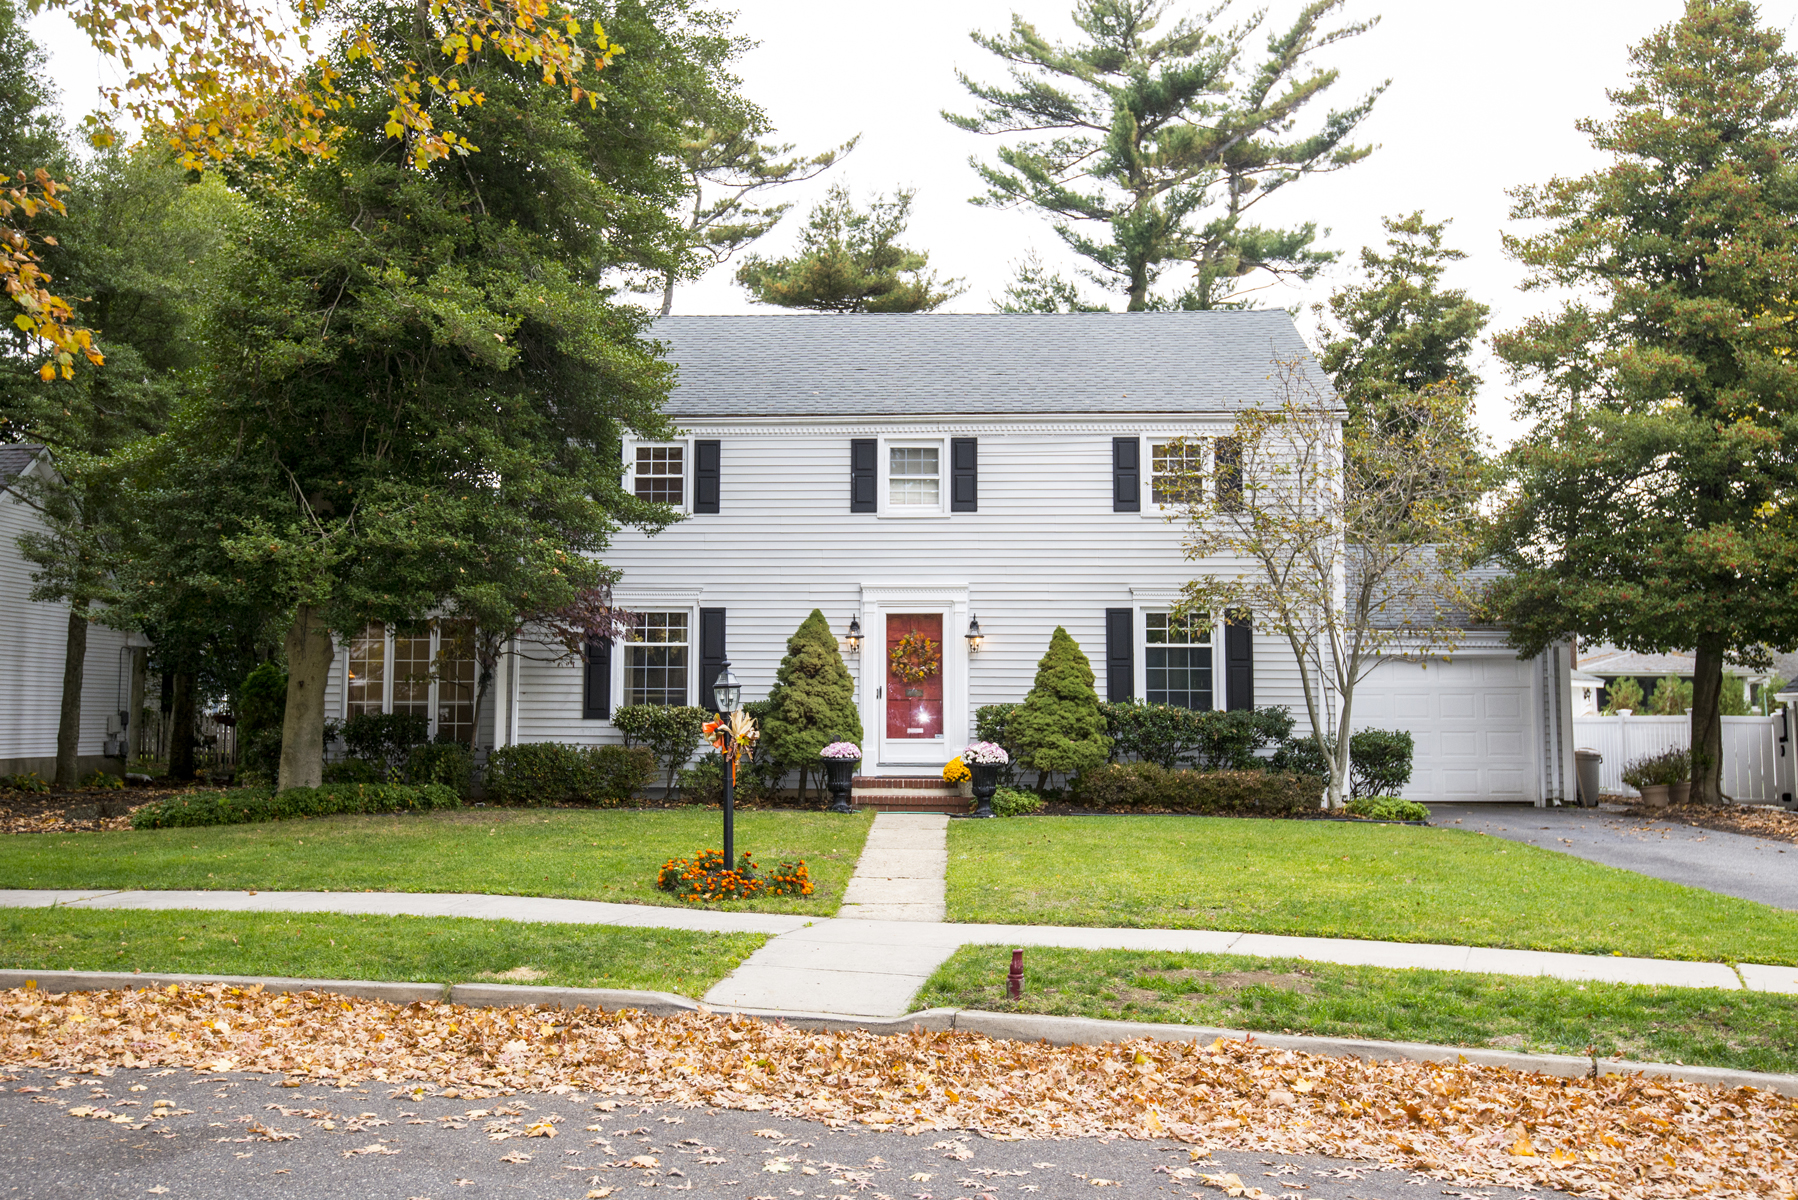 Maison unifamiliale pour l Vente à Nestled on one of Sea Girt's Most Desirable Streets 517 Crescent Parkway Sea Girt, New Jersey 08750 États-Unis